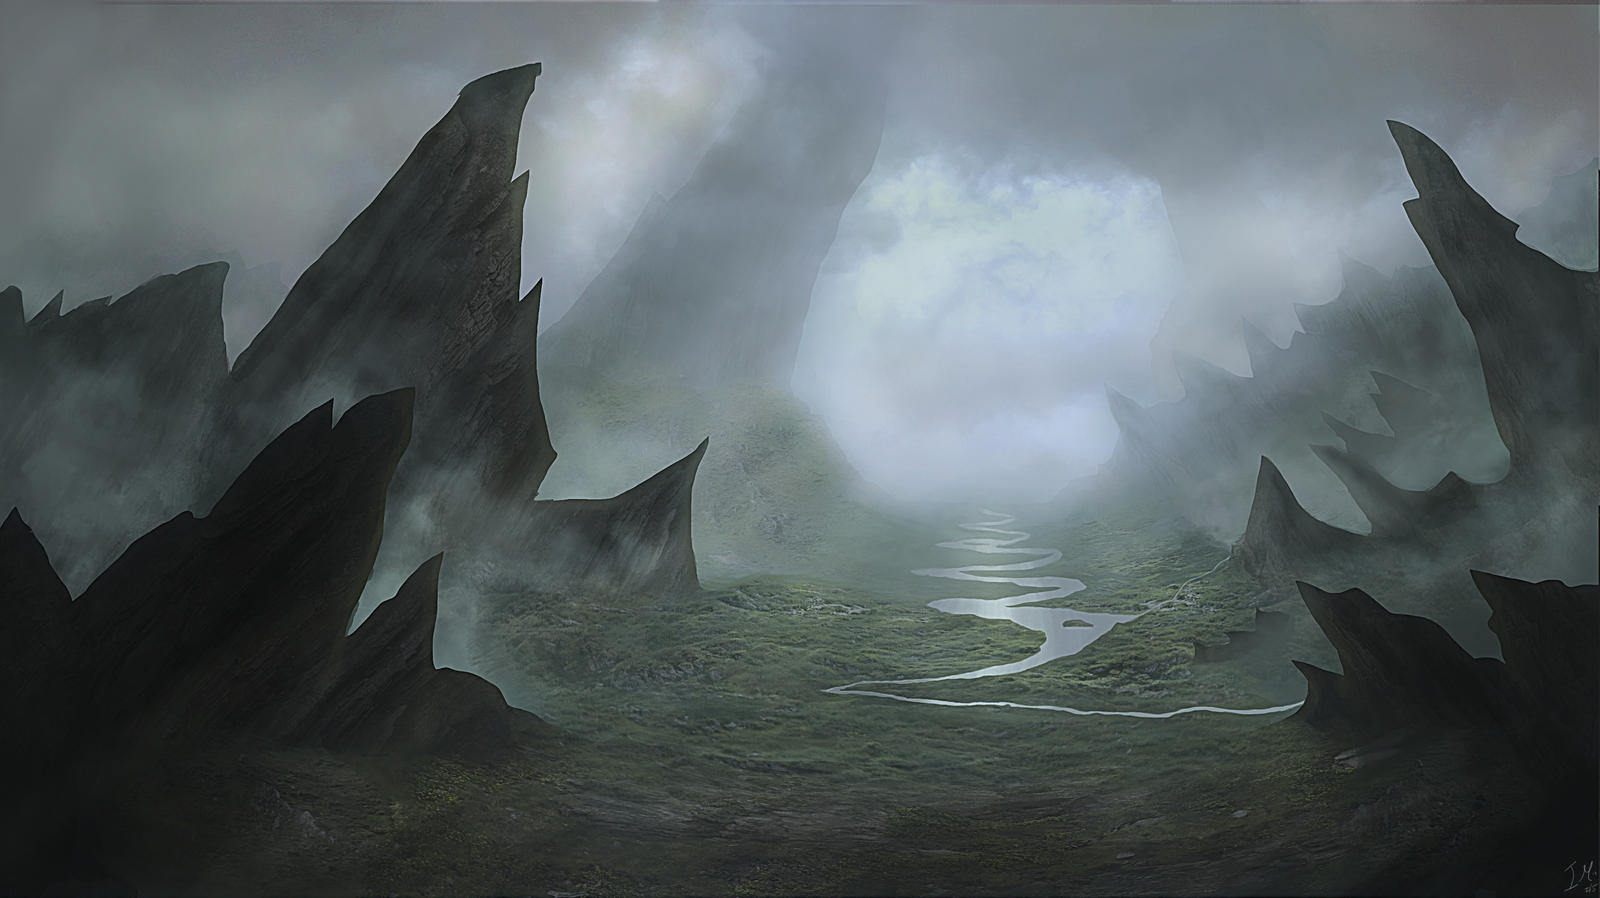 Landscape - Fantasy - Dark Valley by Sinate on DeviantArt